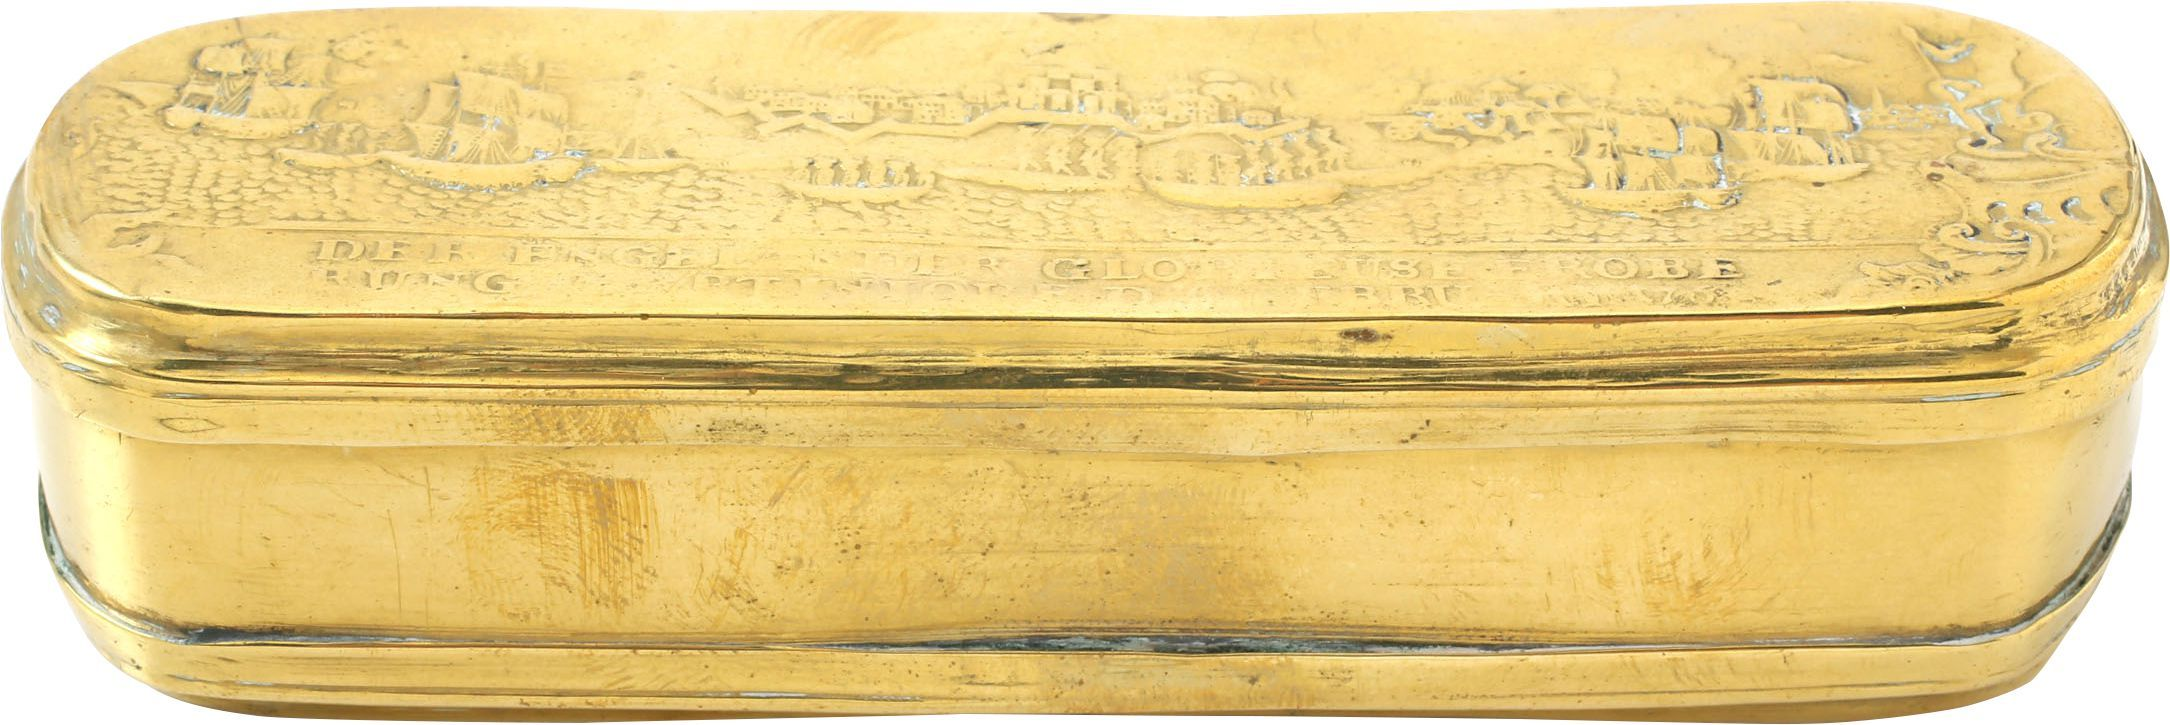 DUTCH TOBACCO BOX C.1770 - Product